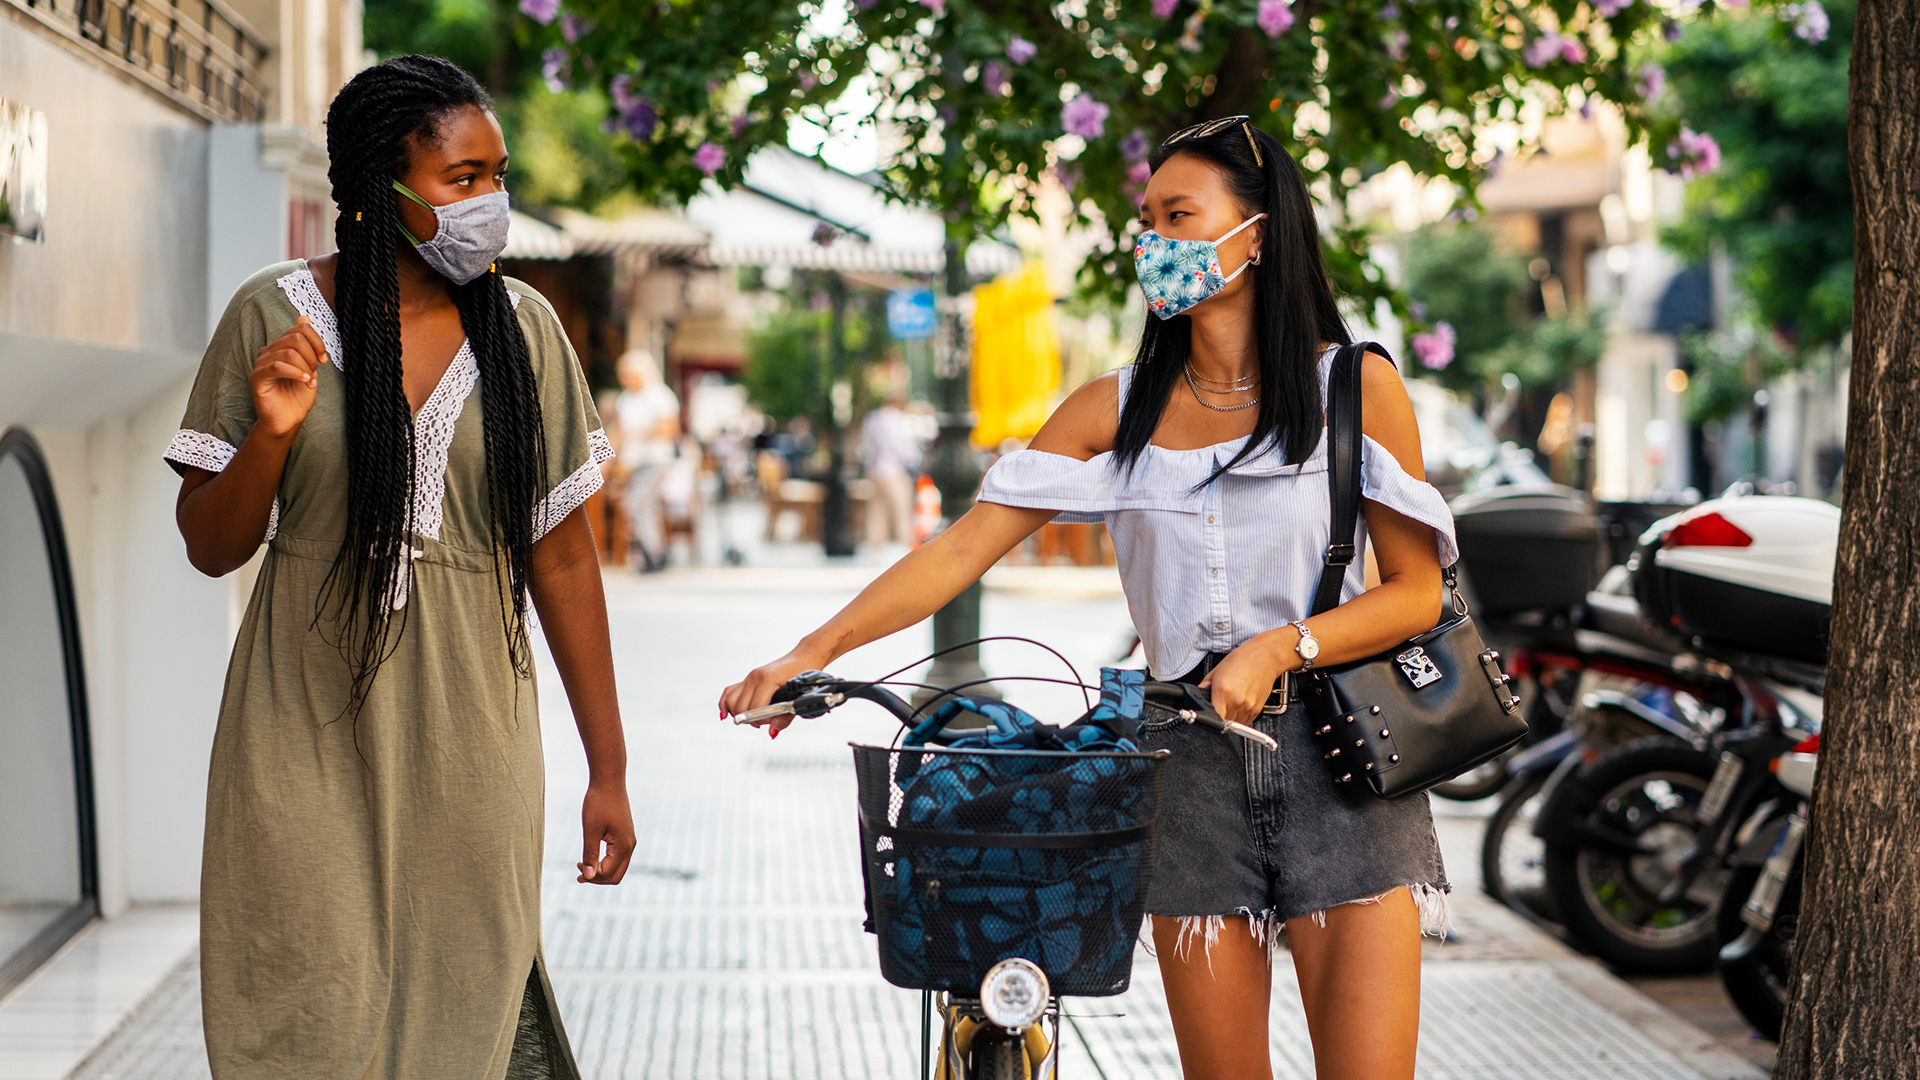 Even when outdoors, where the risk of COVID-19 transmission generally is lower, people should wear face masks during any gatherings, events, and activities.